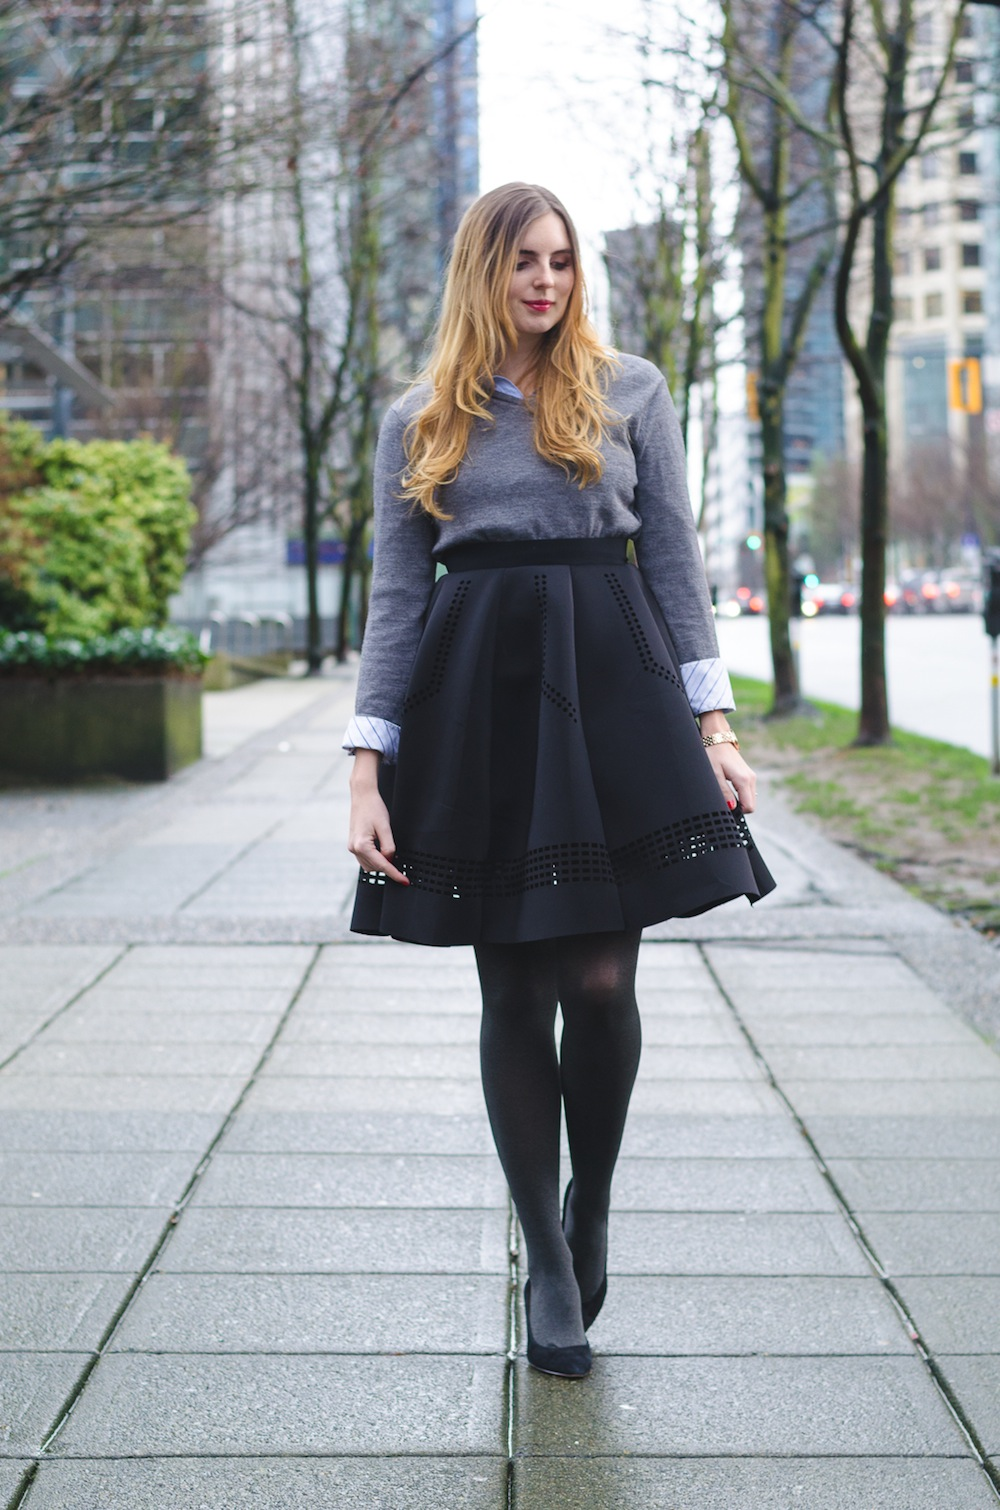 look more fashionable at work, the urban umbrella style blog, vancouver style blog, vancouver style blogger, vancouver style bloggers, vancouver fashion blog, vancouver lifestyle blog, vancouver health blog, vancouver fitness blog, vancouver travel blog, canadian fashion blog, canadian style blog, canadian lifestyle blog, canadian health blog, canadian fitness blog, canadian travel blog, west coast style, bree aylwin, how to look stylish at work, 10 ways to look more chic at the office, vancouver fashion blogger, top fashion blogs, best style blogs 2015, popular fashion blogs, top style blogs, top lifestyle blogs, top fitness blogs, top health blogs, top travel blogs